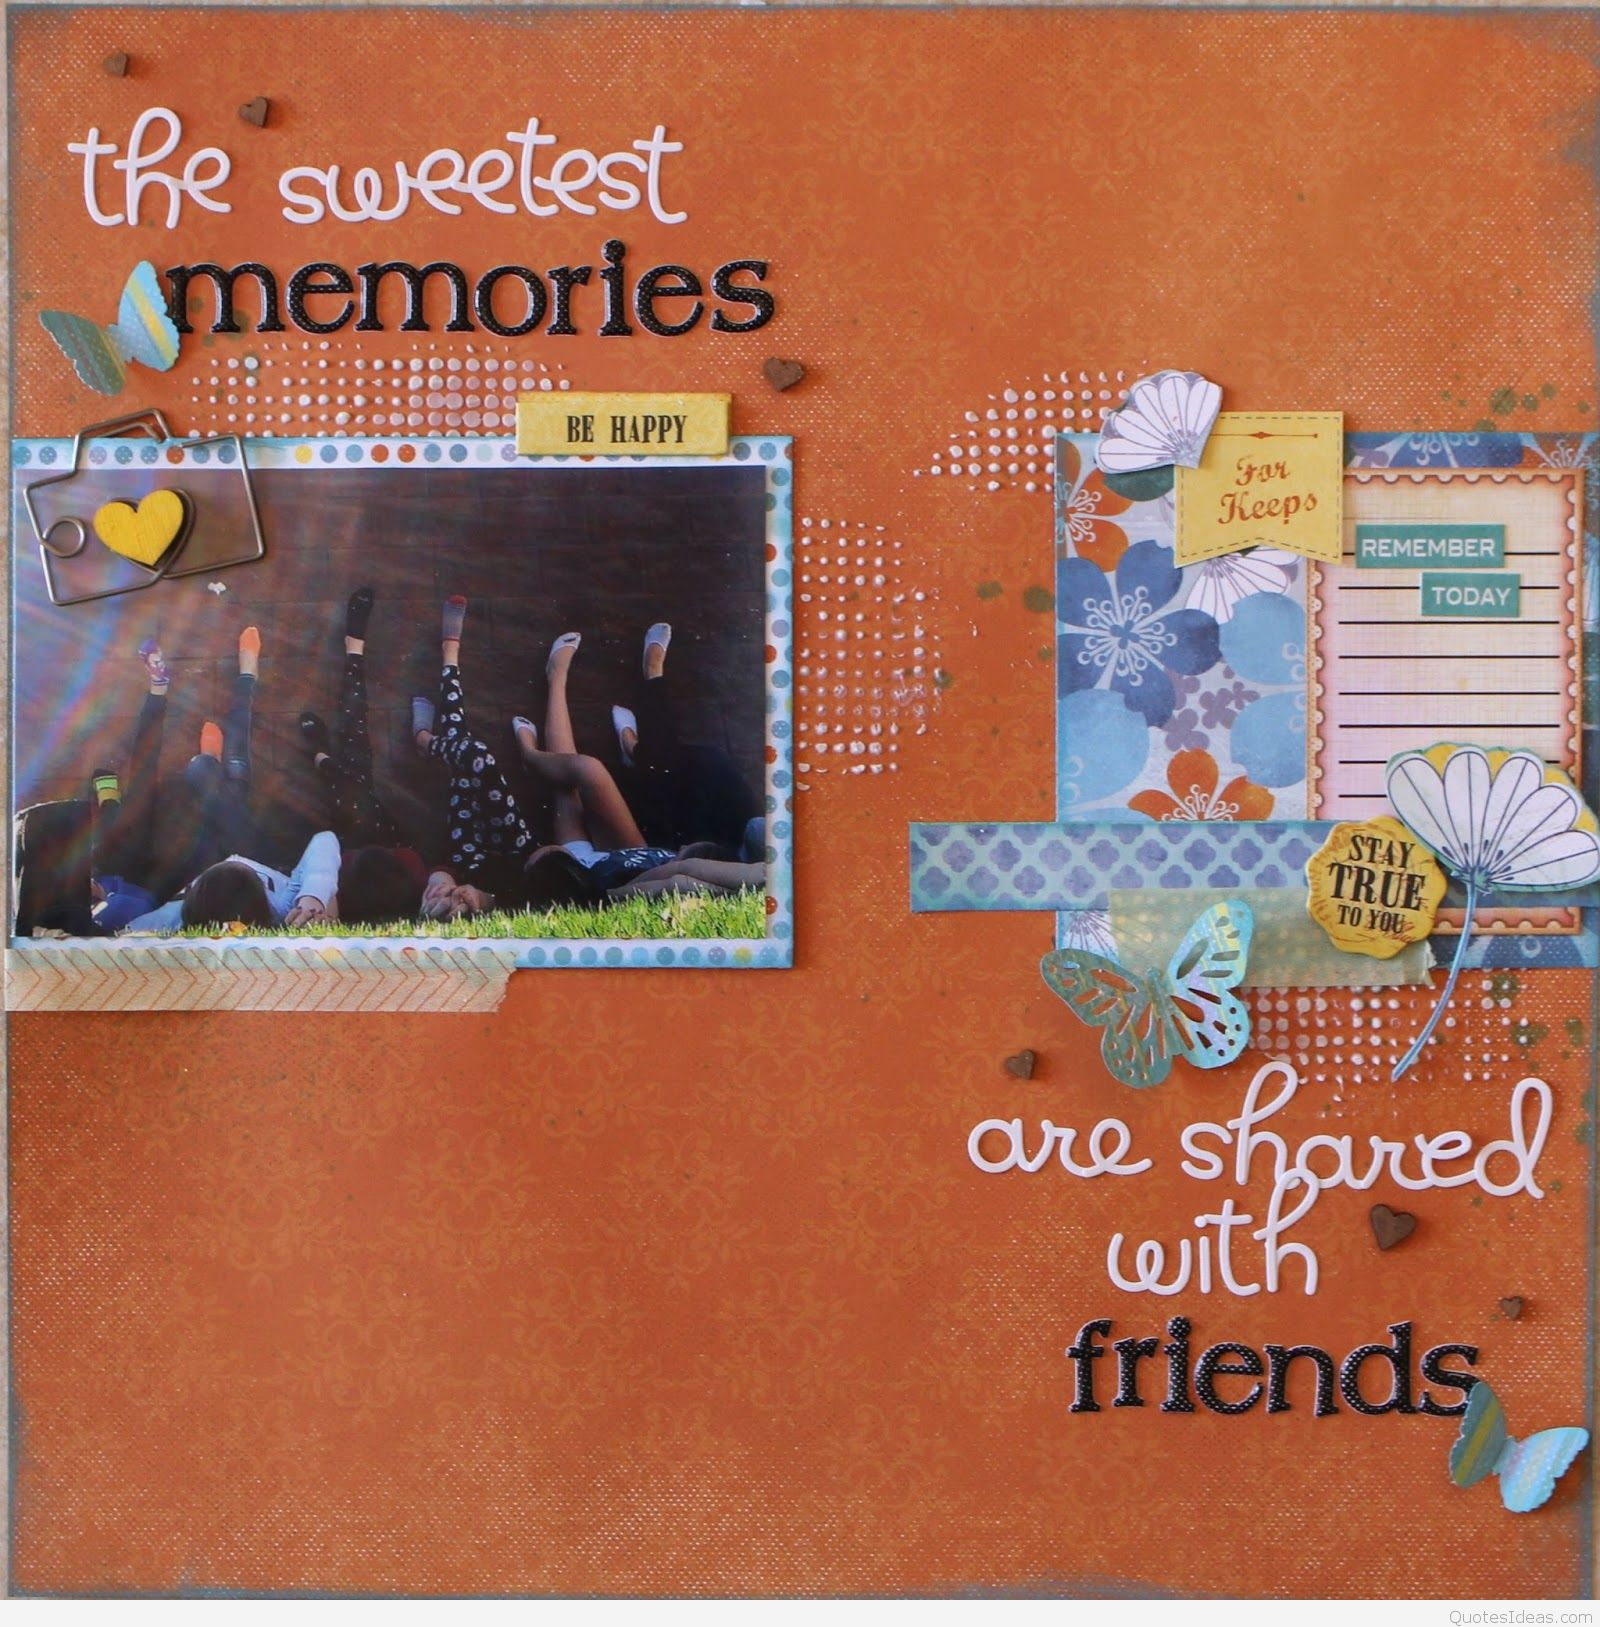 Sweet memories card wallpaper quote with friends